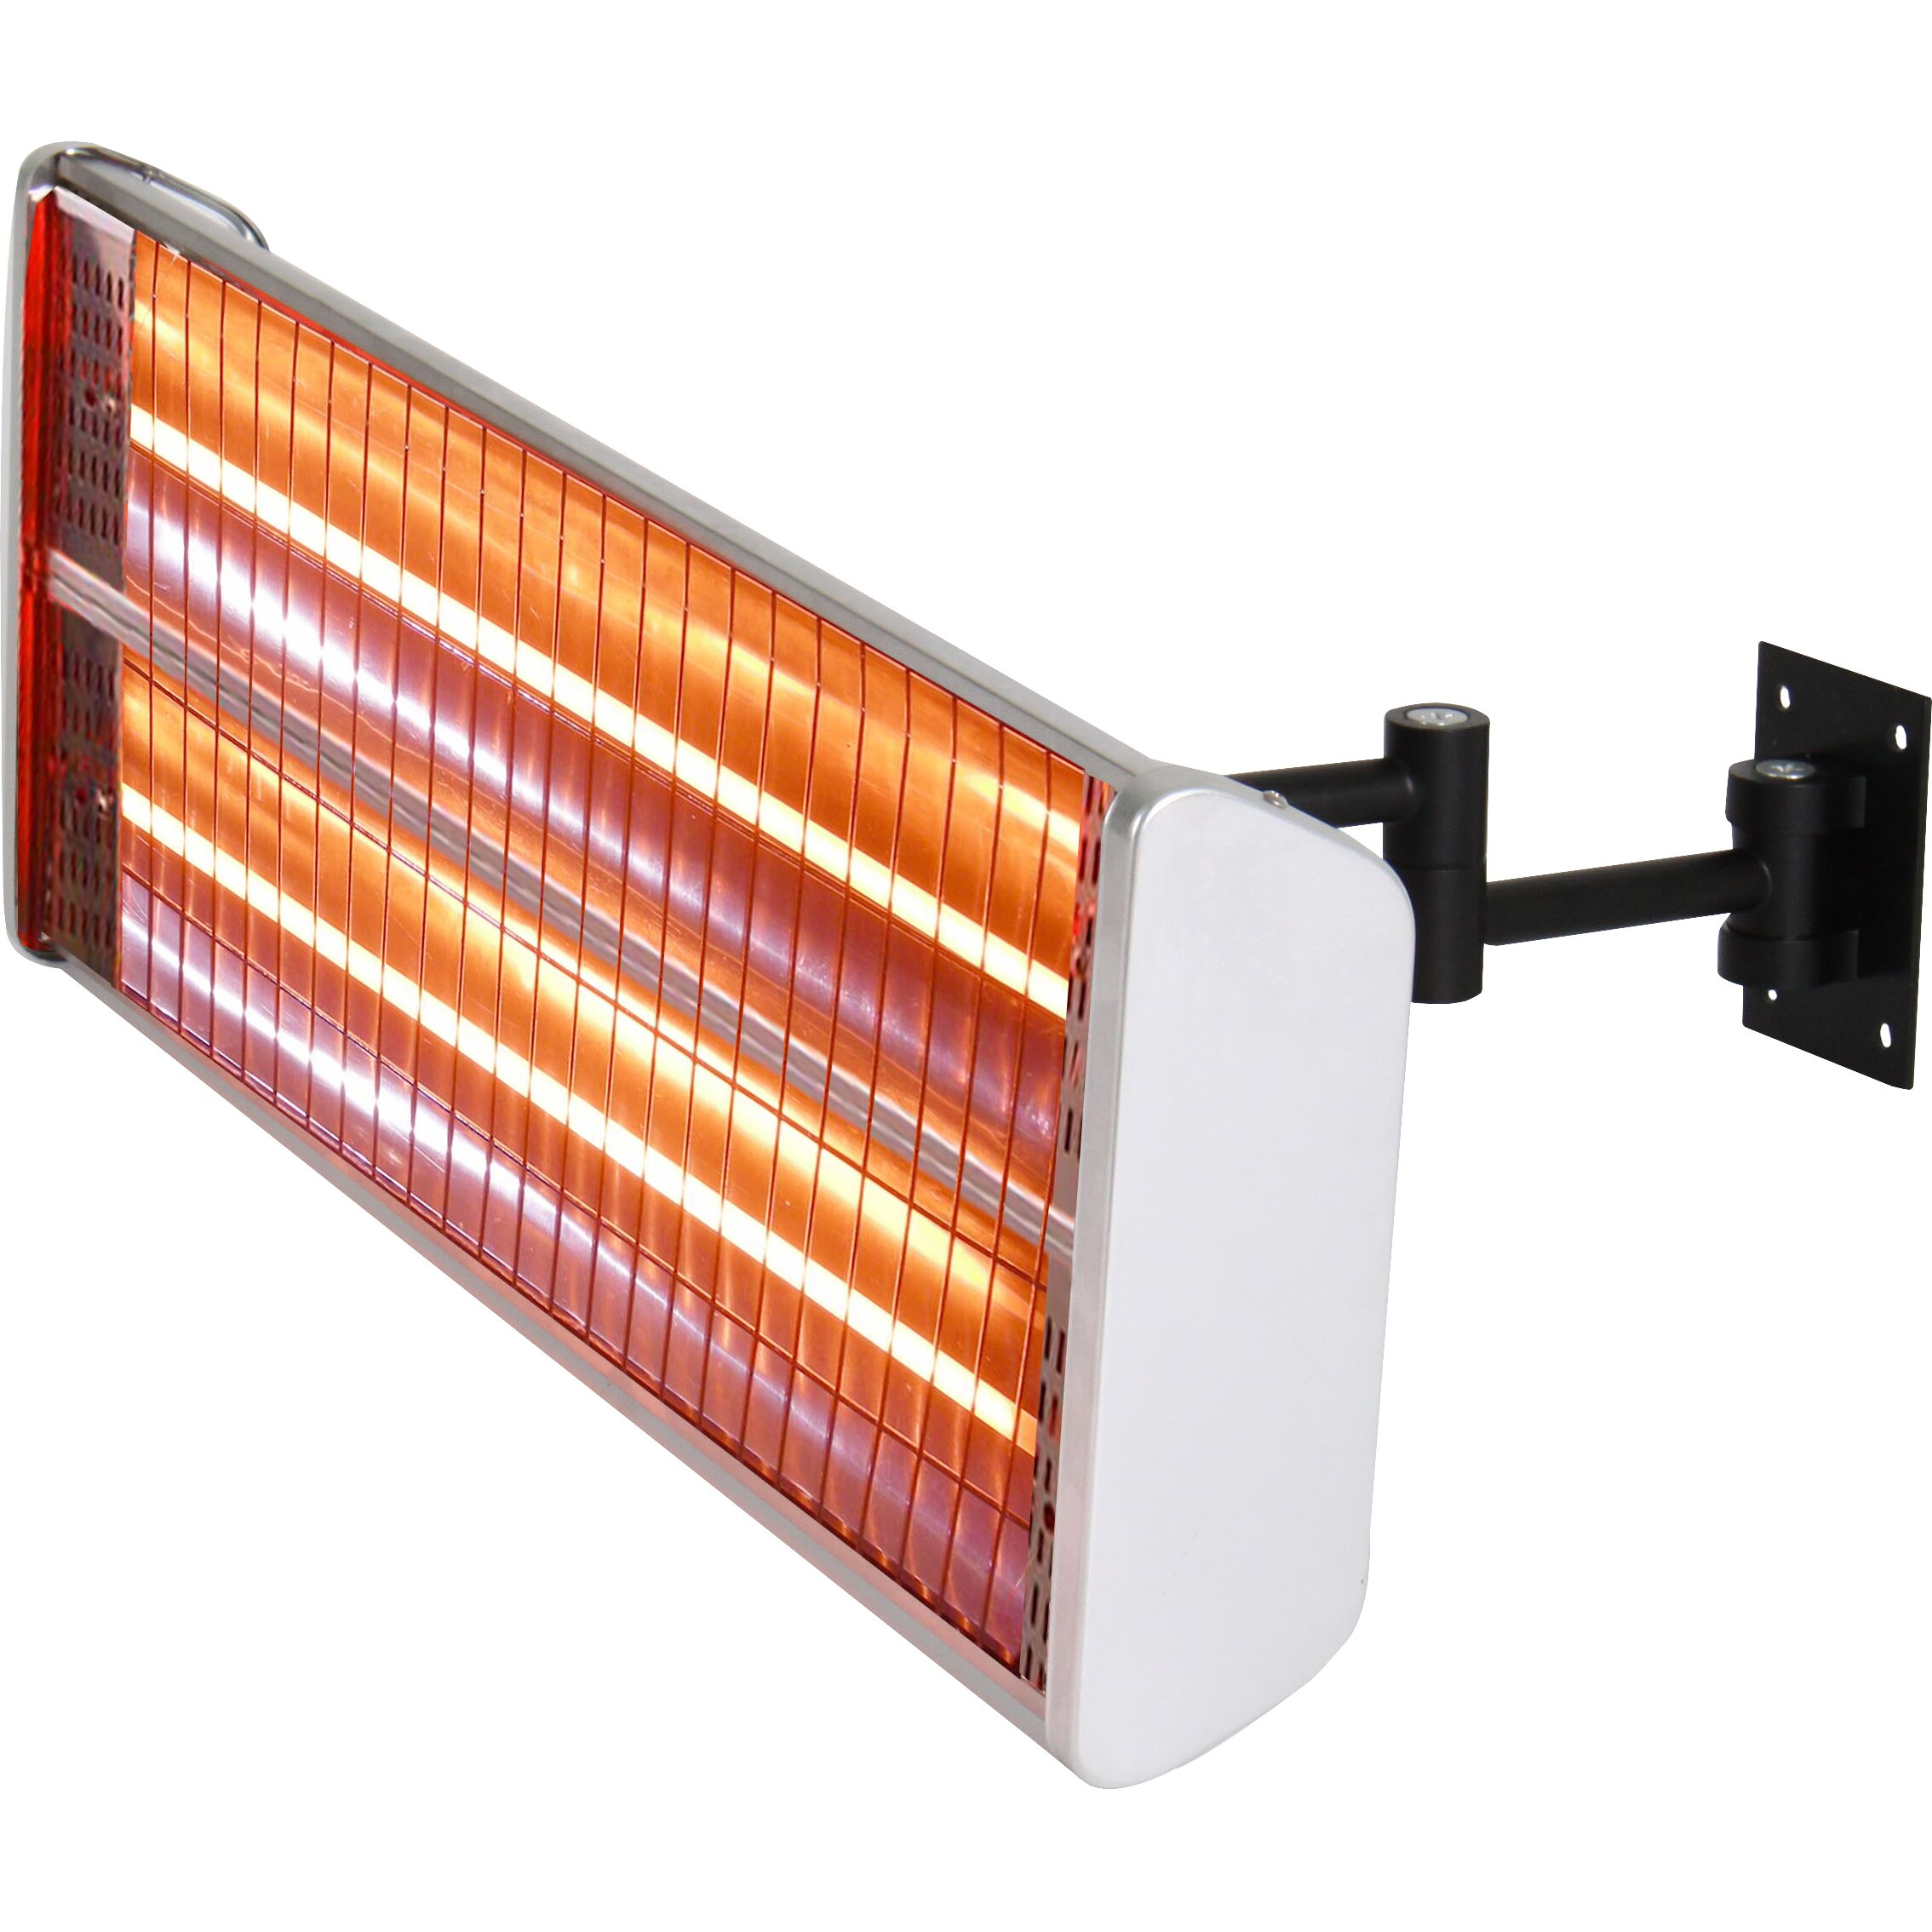 Outdoor Outdoor Heating Patio Heaters EnerG+ SKU: ENGP1006